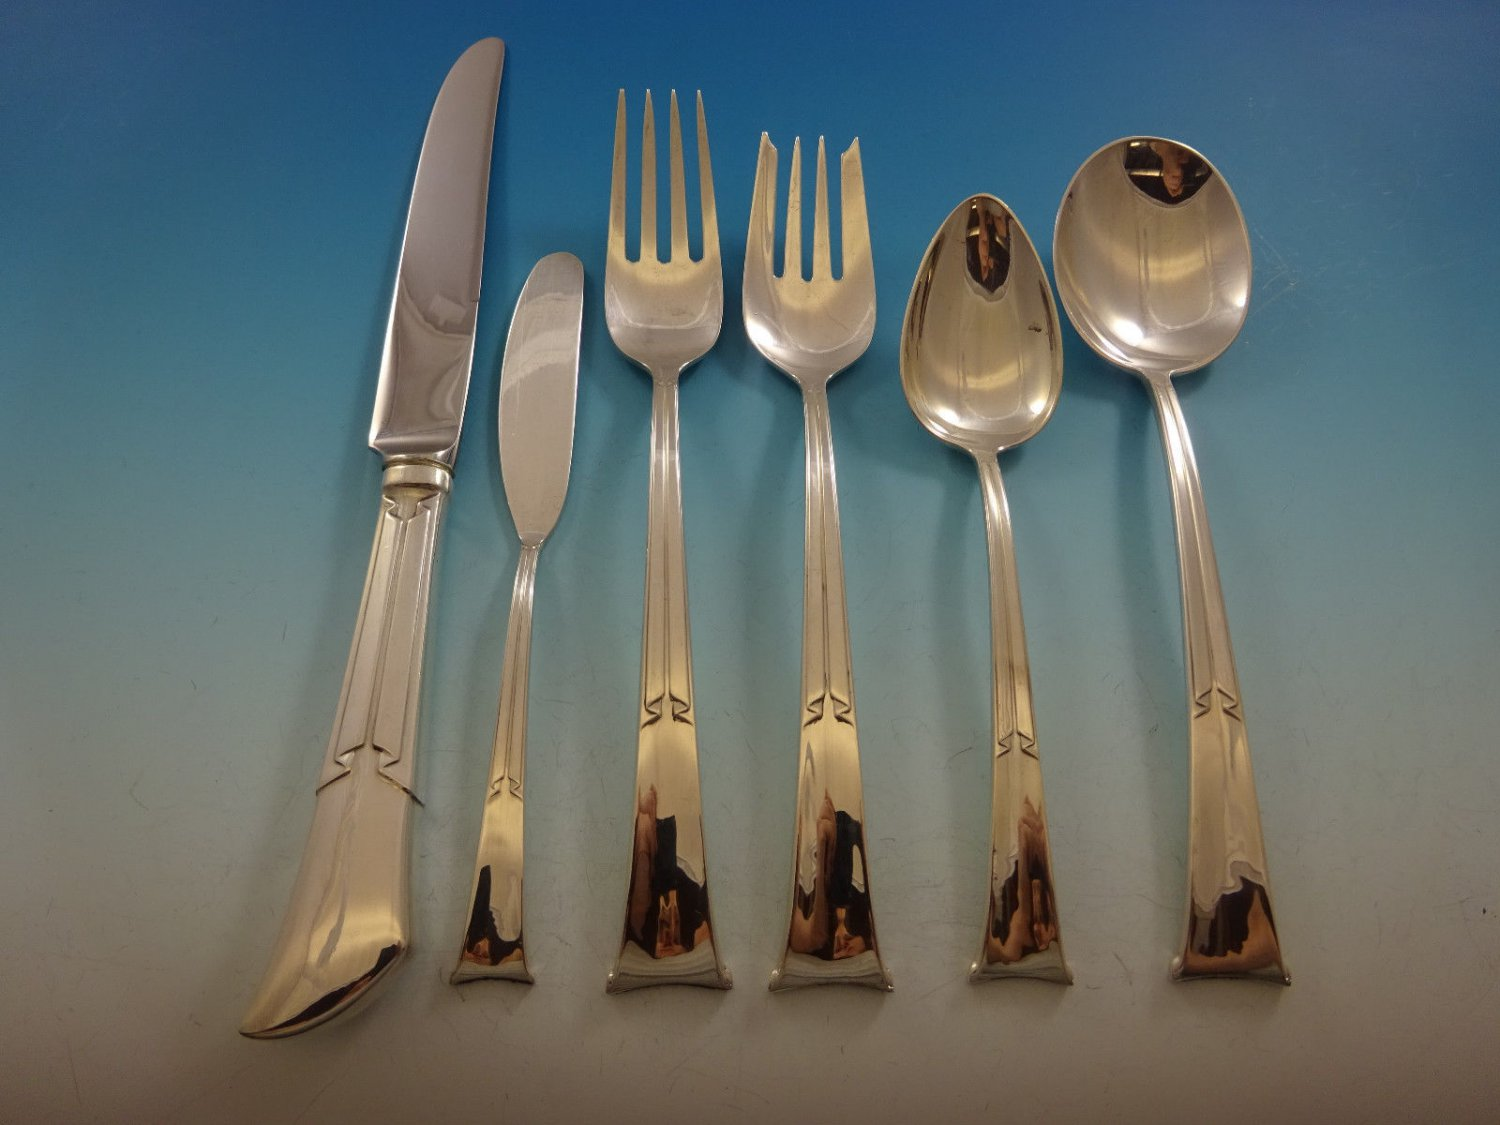 Linenfold by Tiffany & Co Sterling Silver Flatware Set For 8 Service 52 Pieces